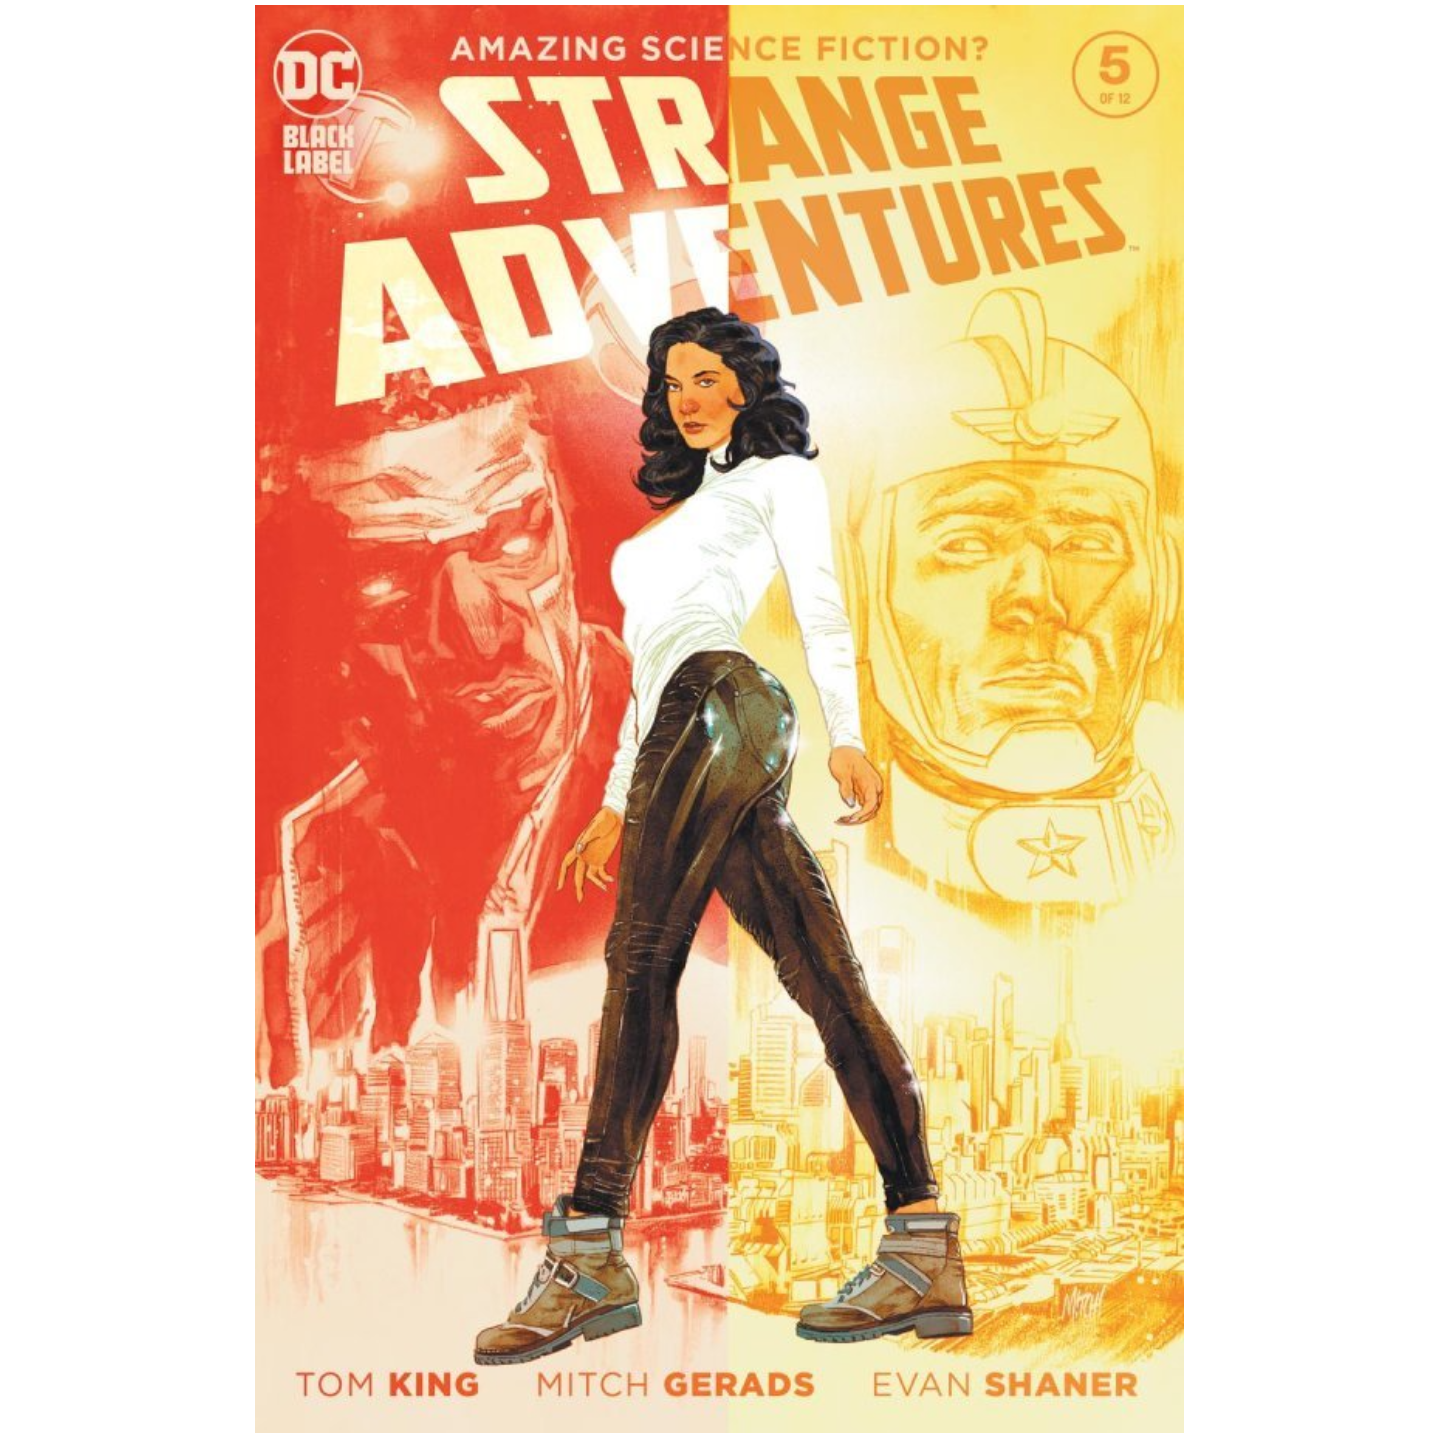 STRANGE ADVENTURES #5 (OF 12) CVR A MITCH GERADS (MR)